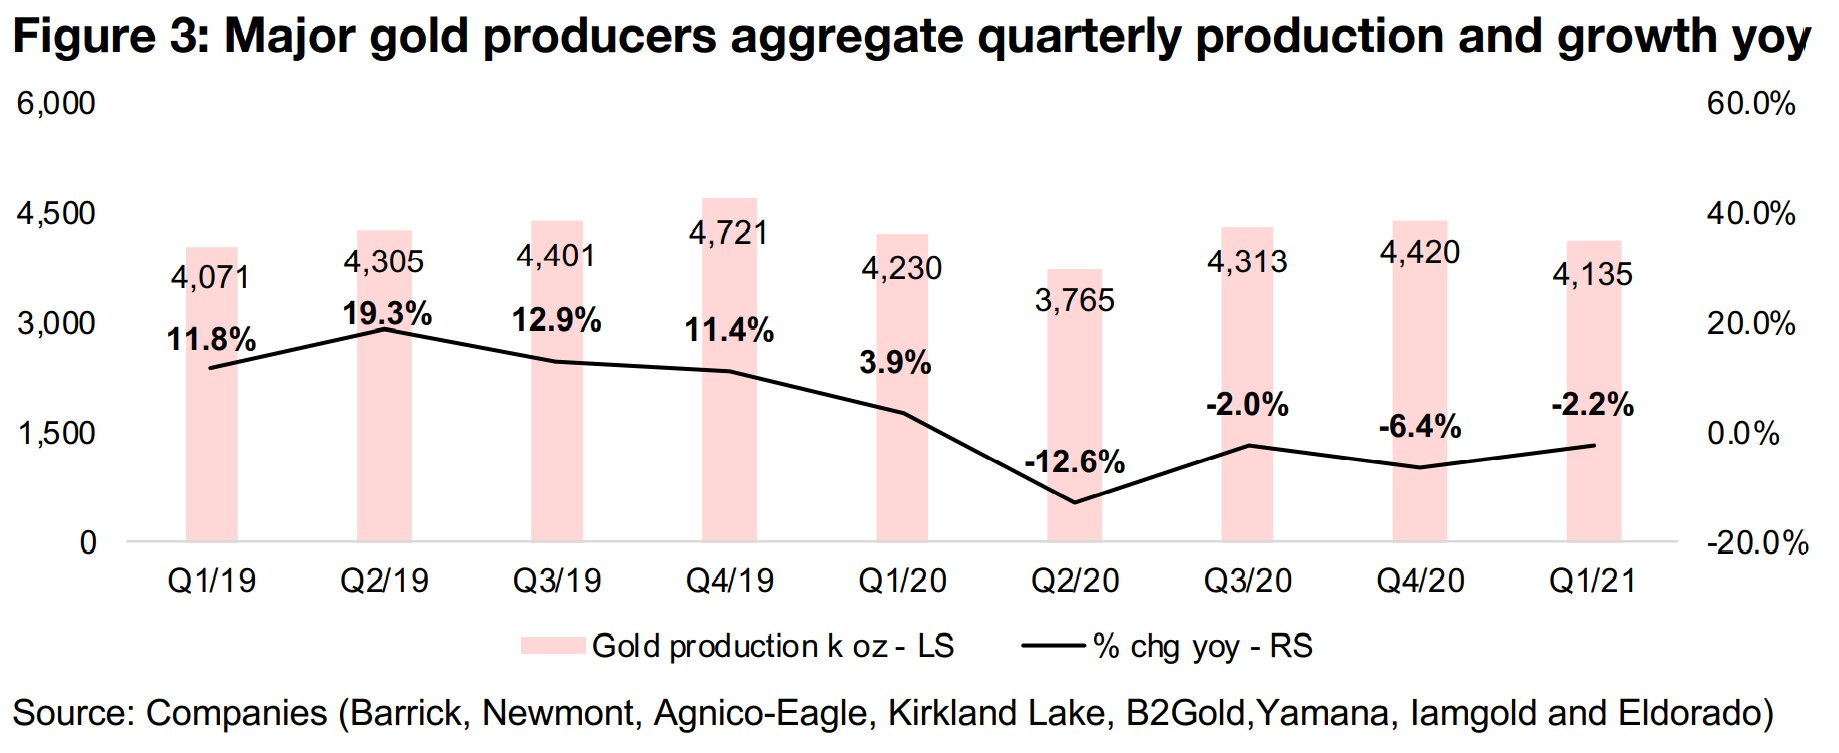 2) Q1/21 another strong quarter for gold producers